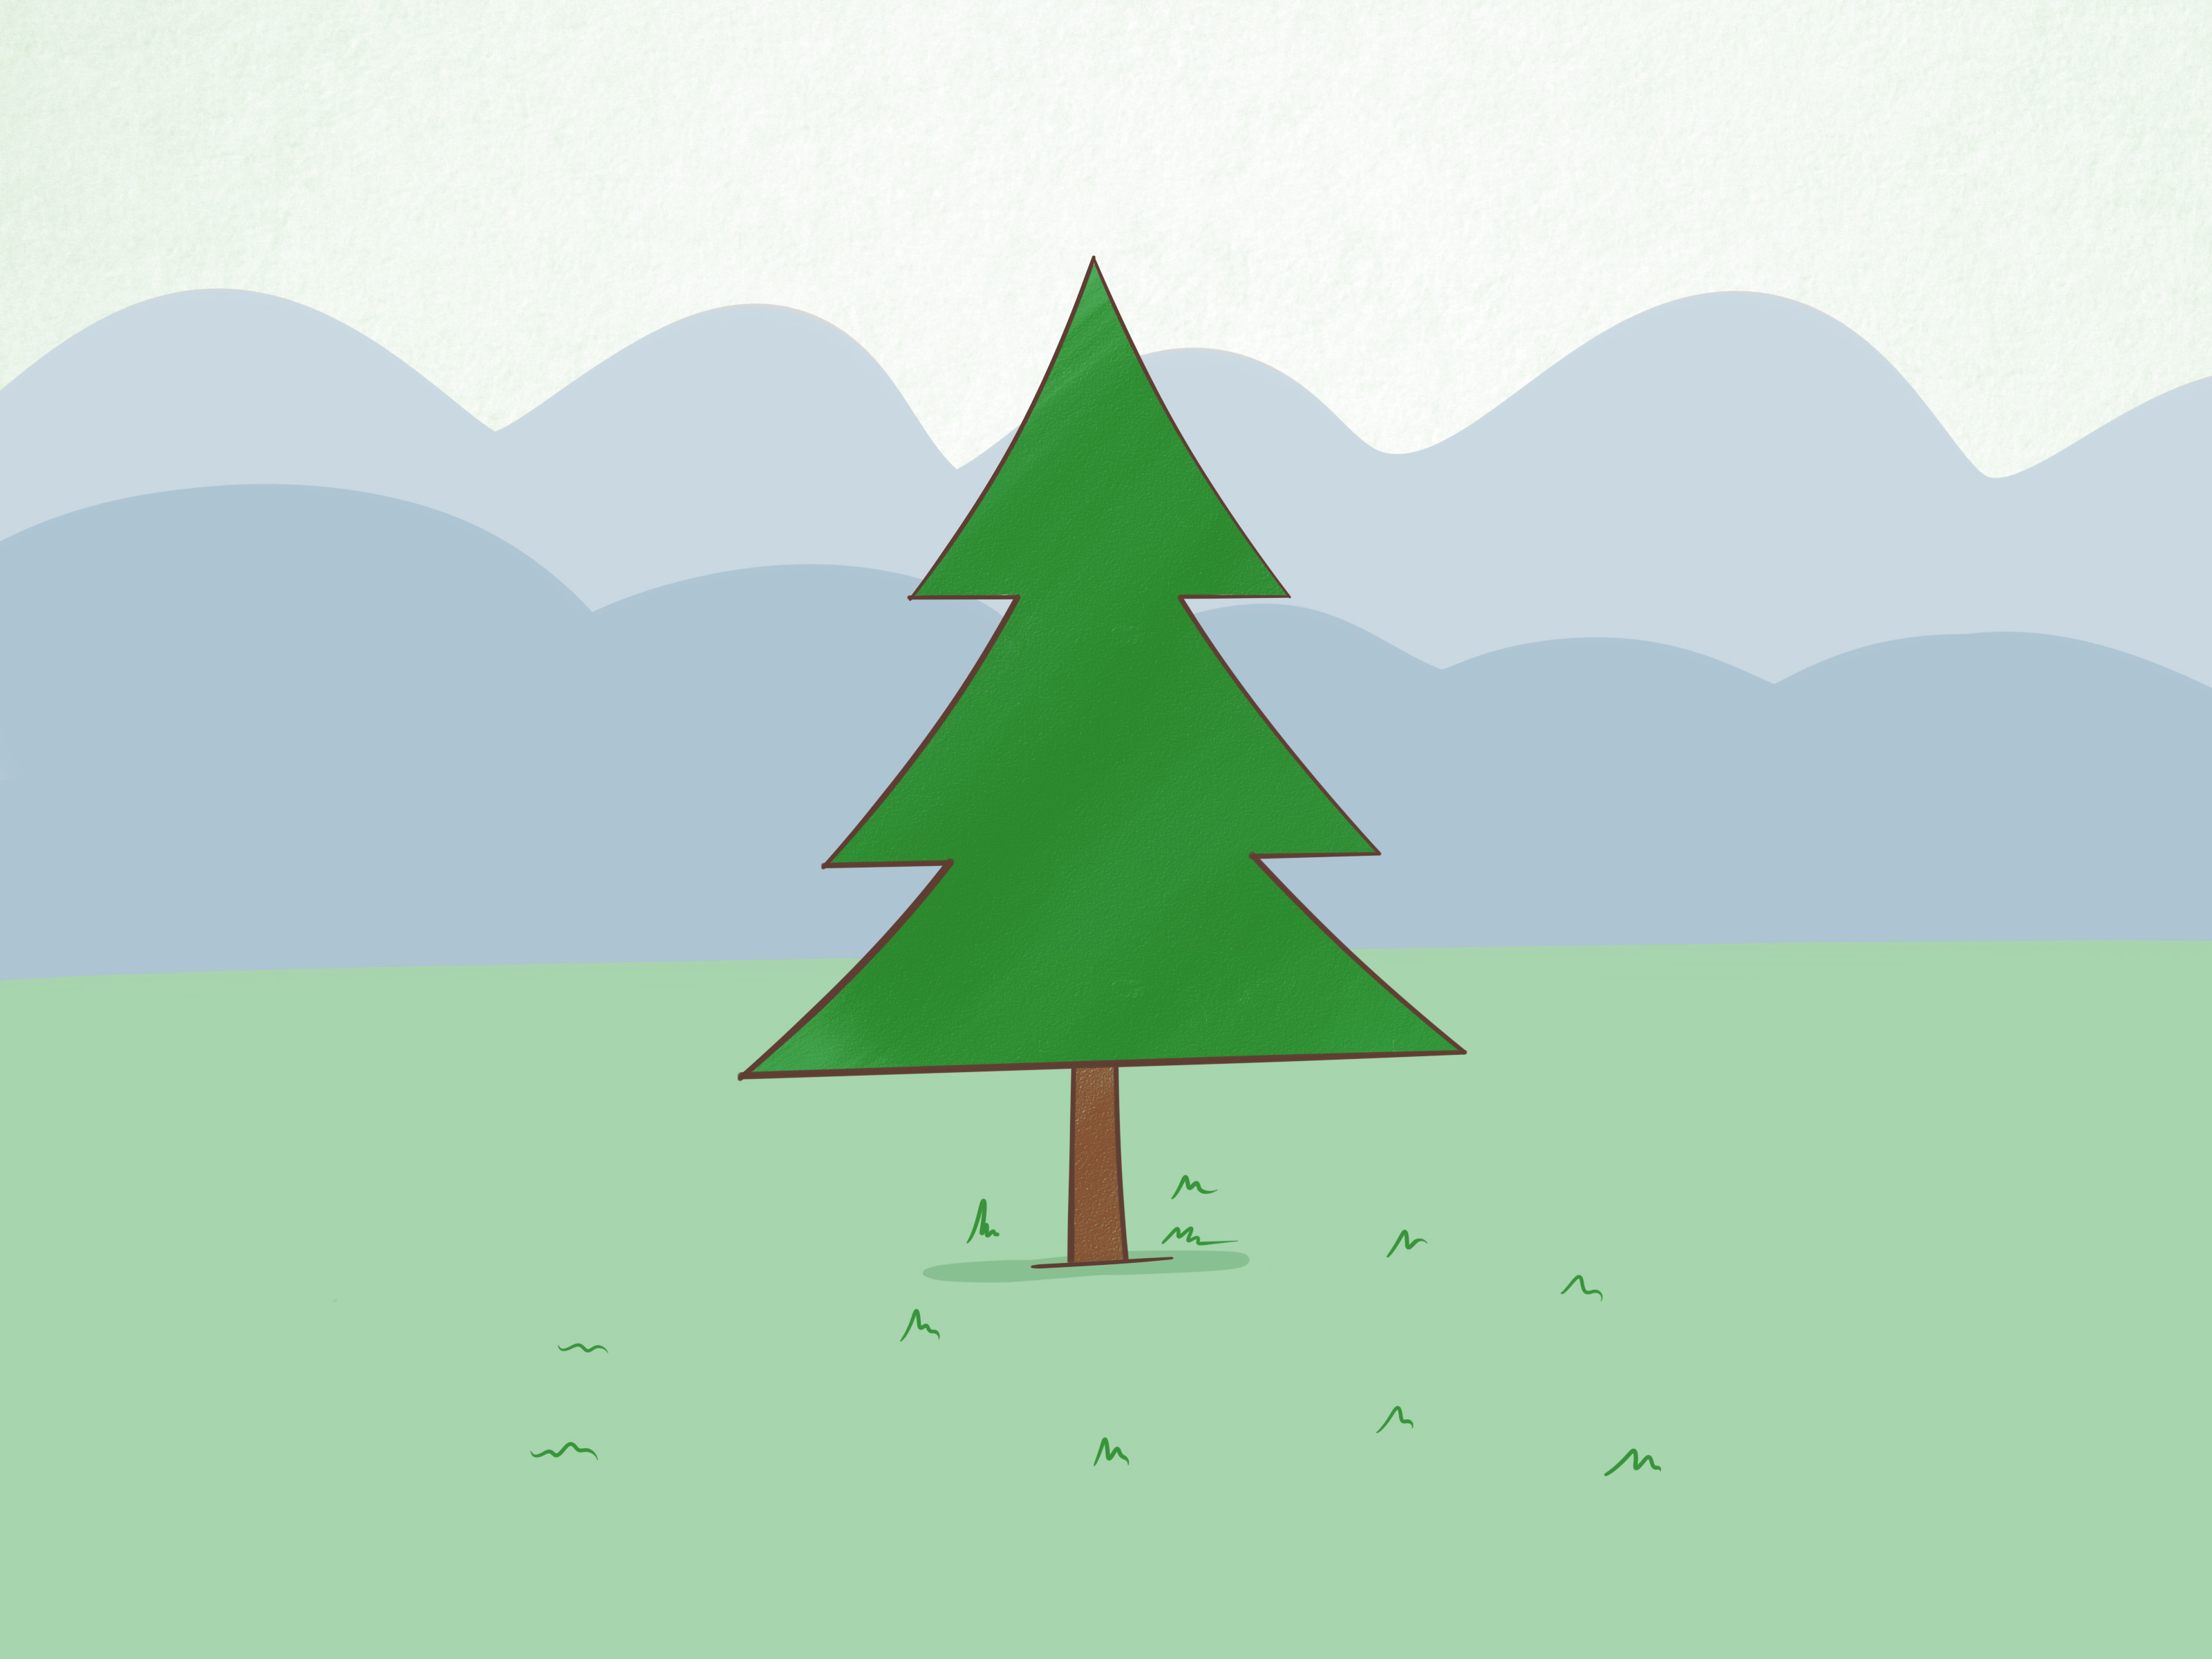 How to Draw a Simple Tree: 9 Steps (with Pictures).